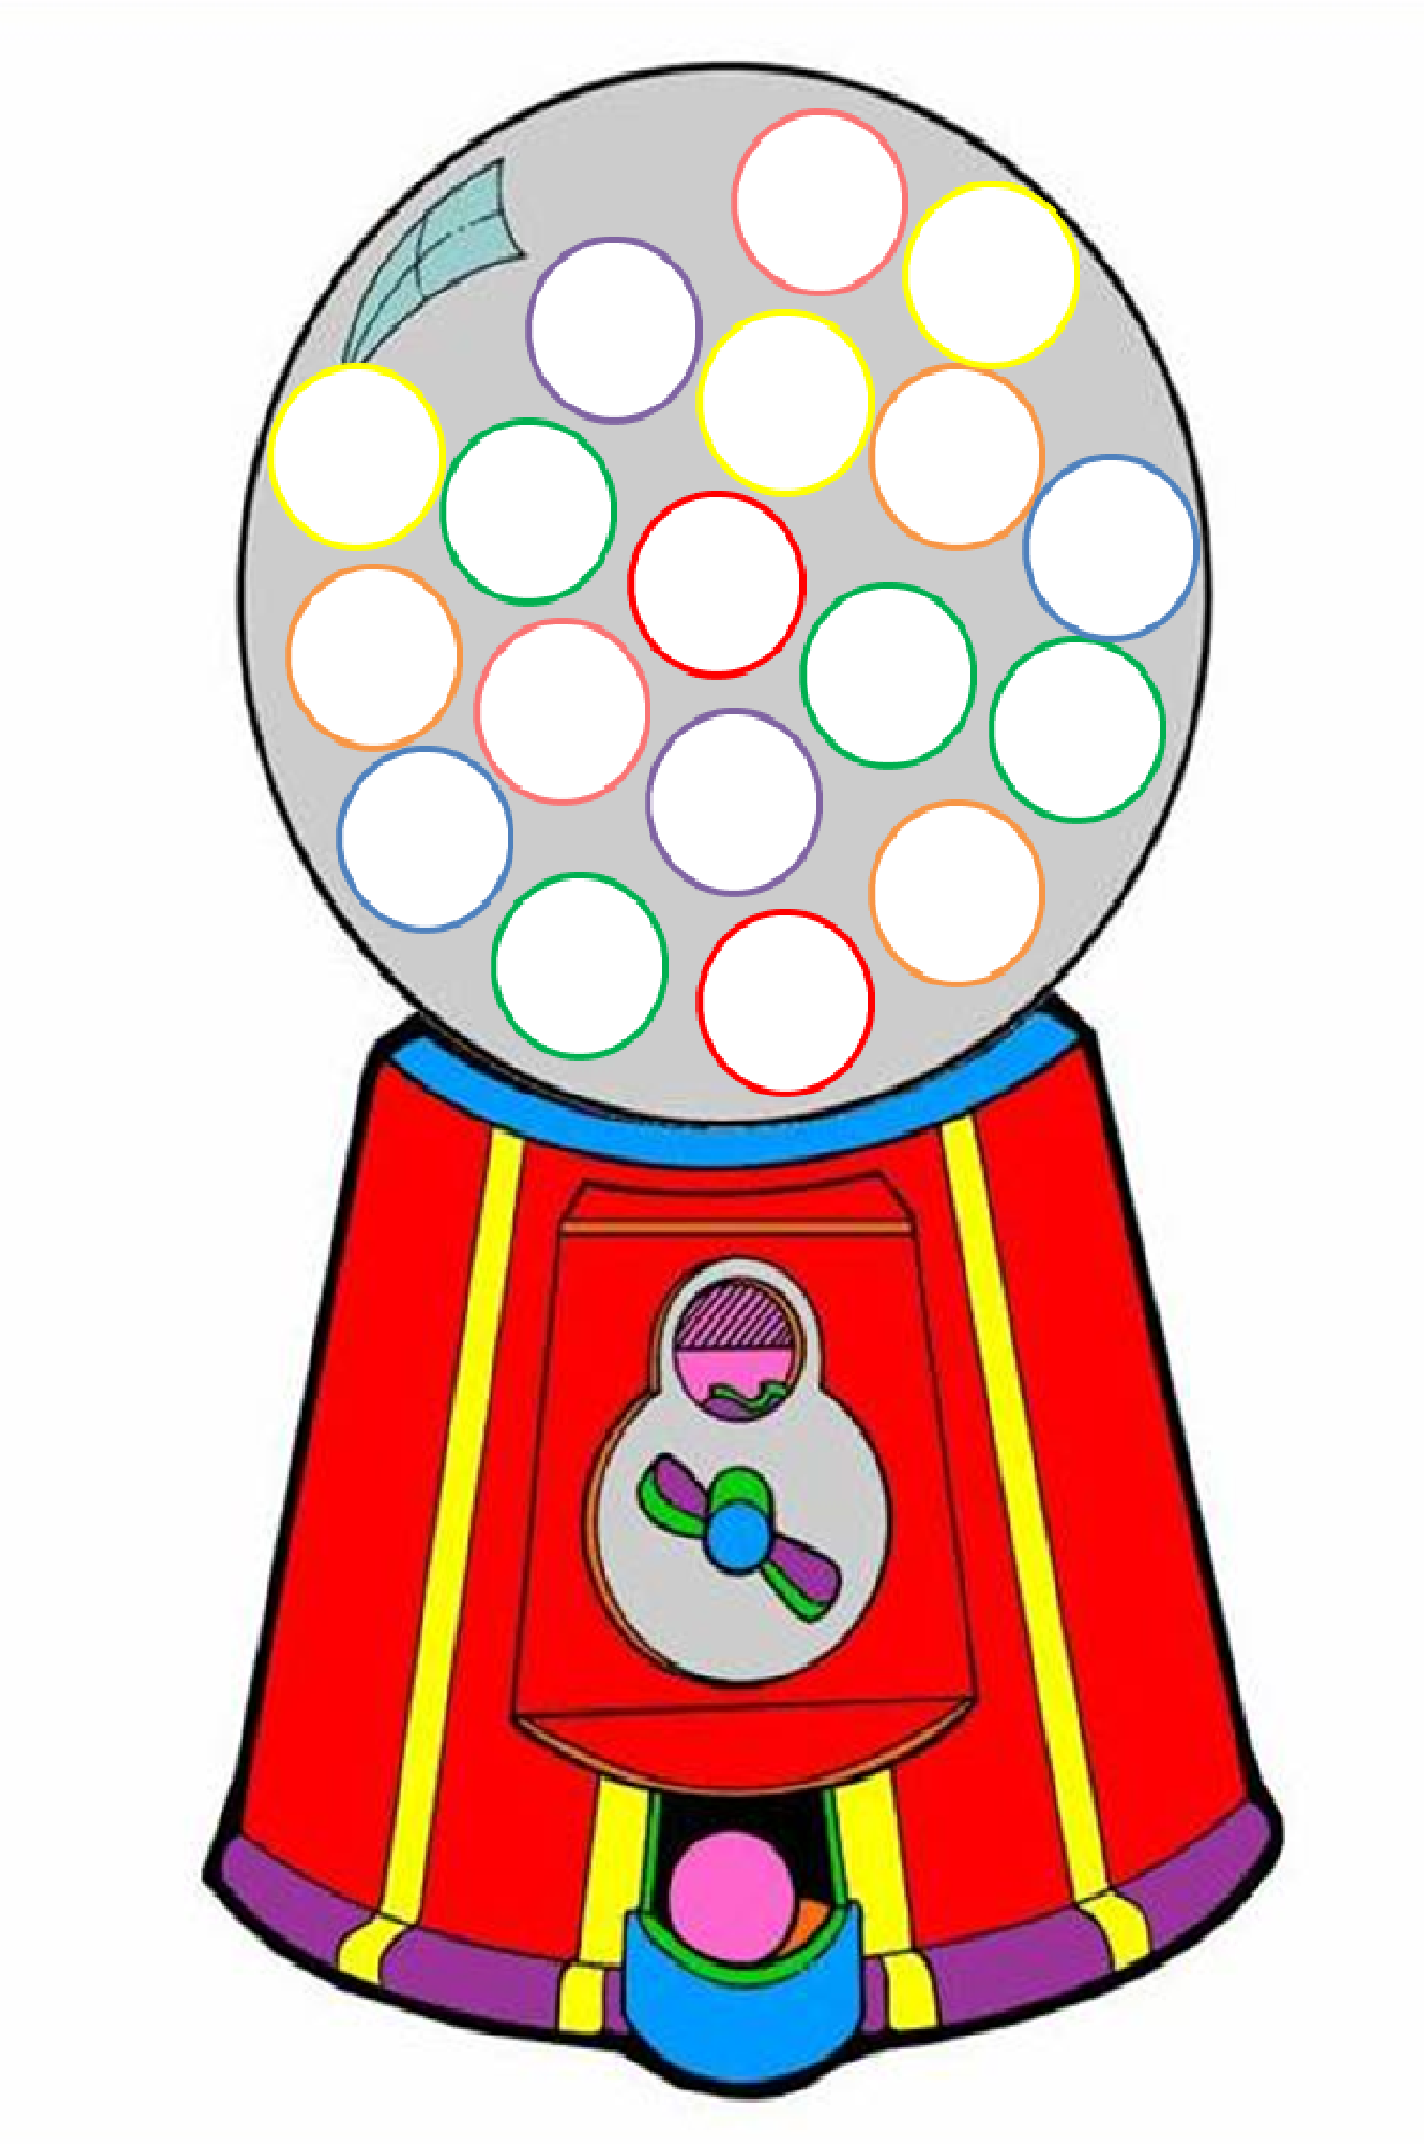 clip art free download Free download best . Gumball machine clipart retro